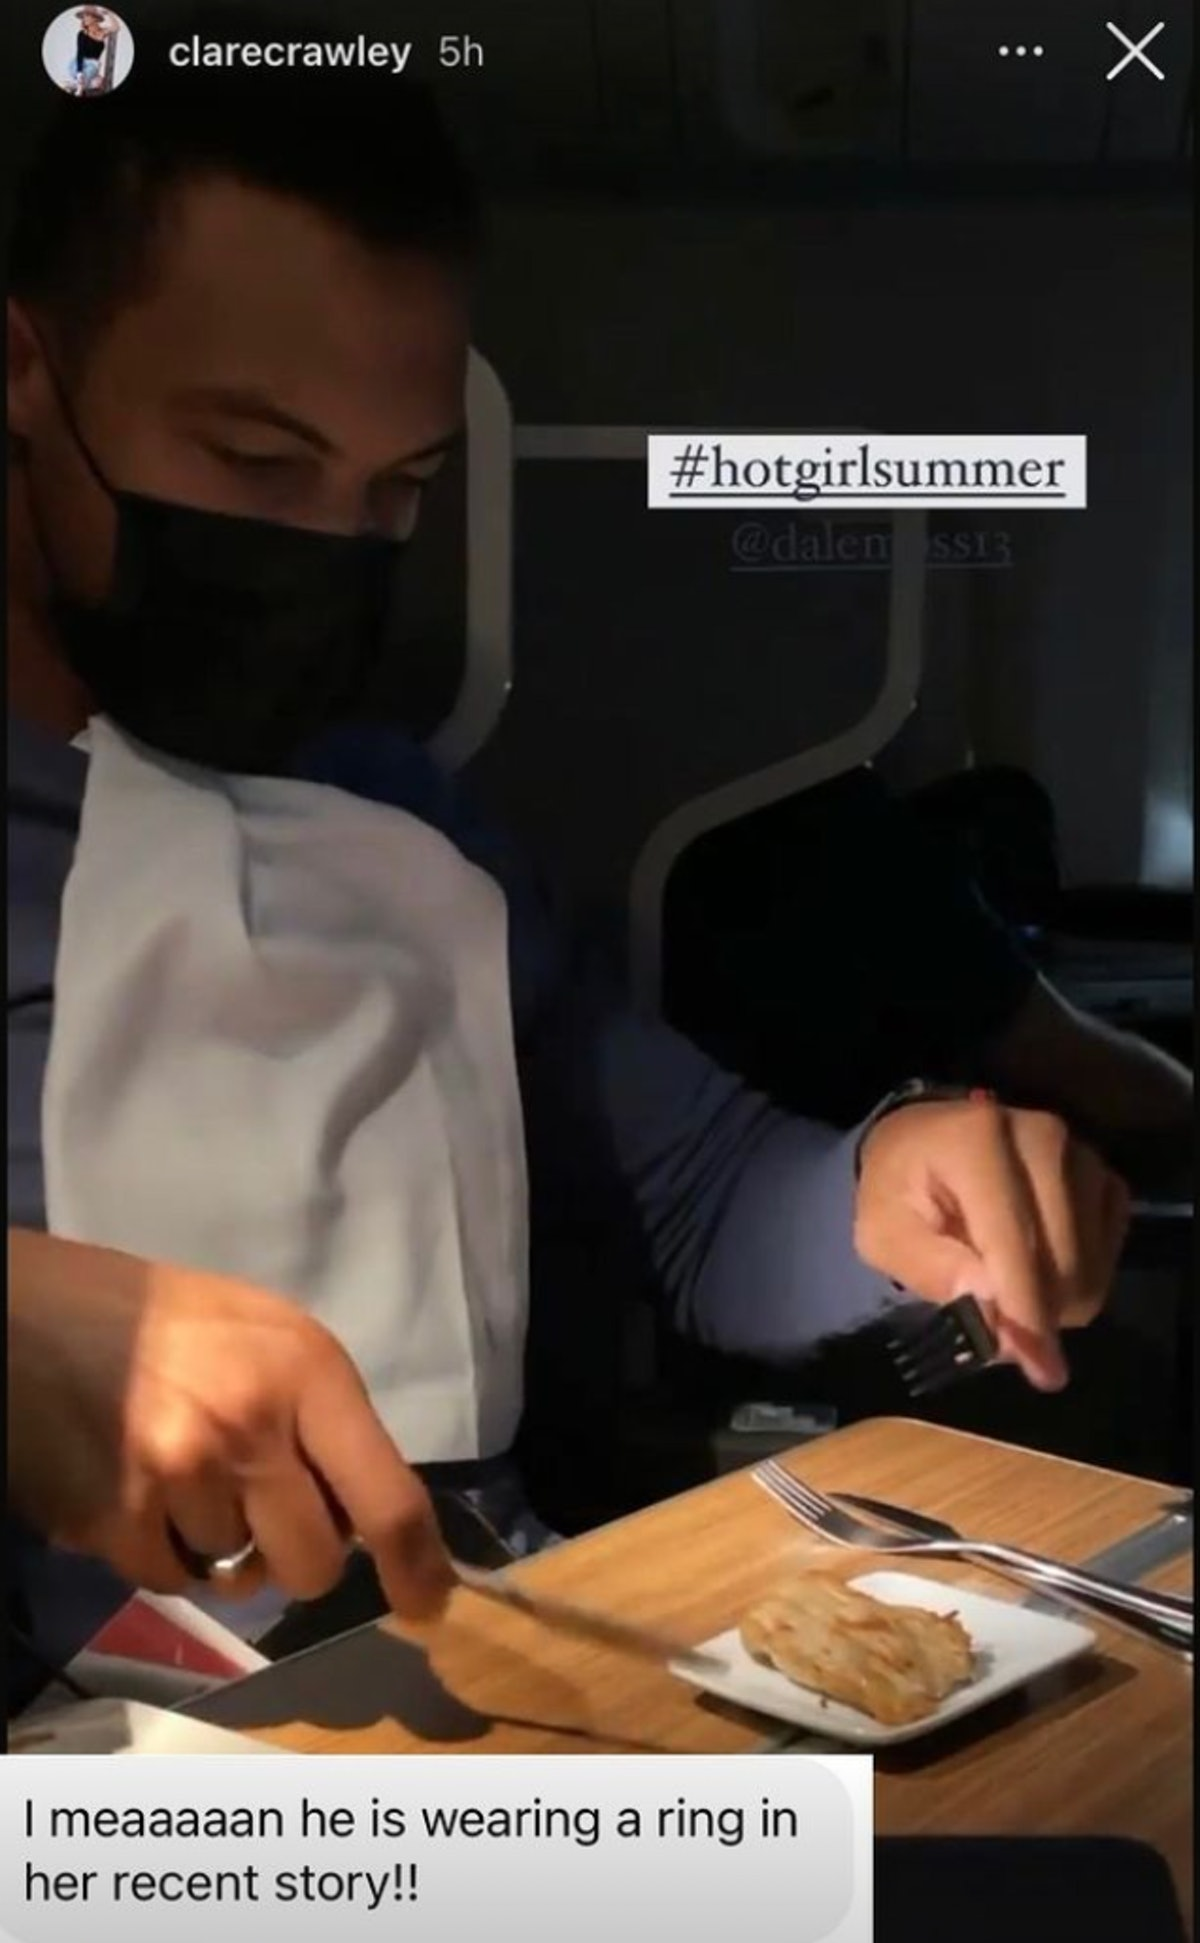 Dale Moss wearing what seems like a wedding ring on Clare Crawley's Instagram story.